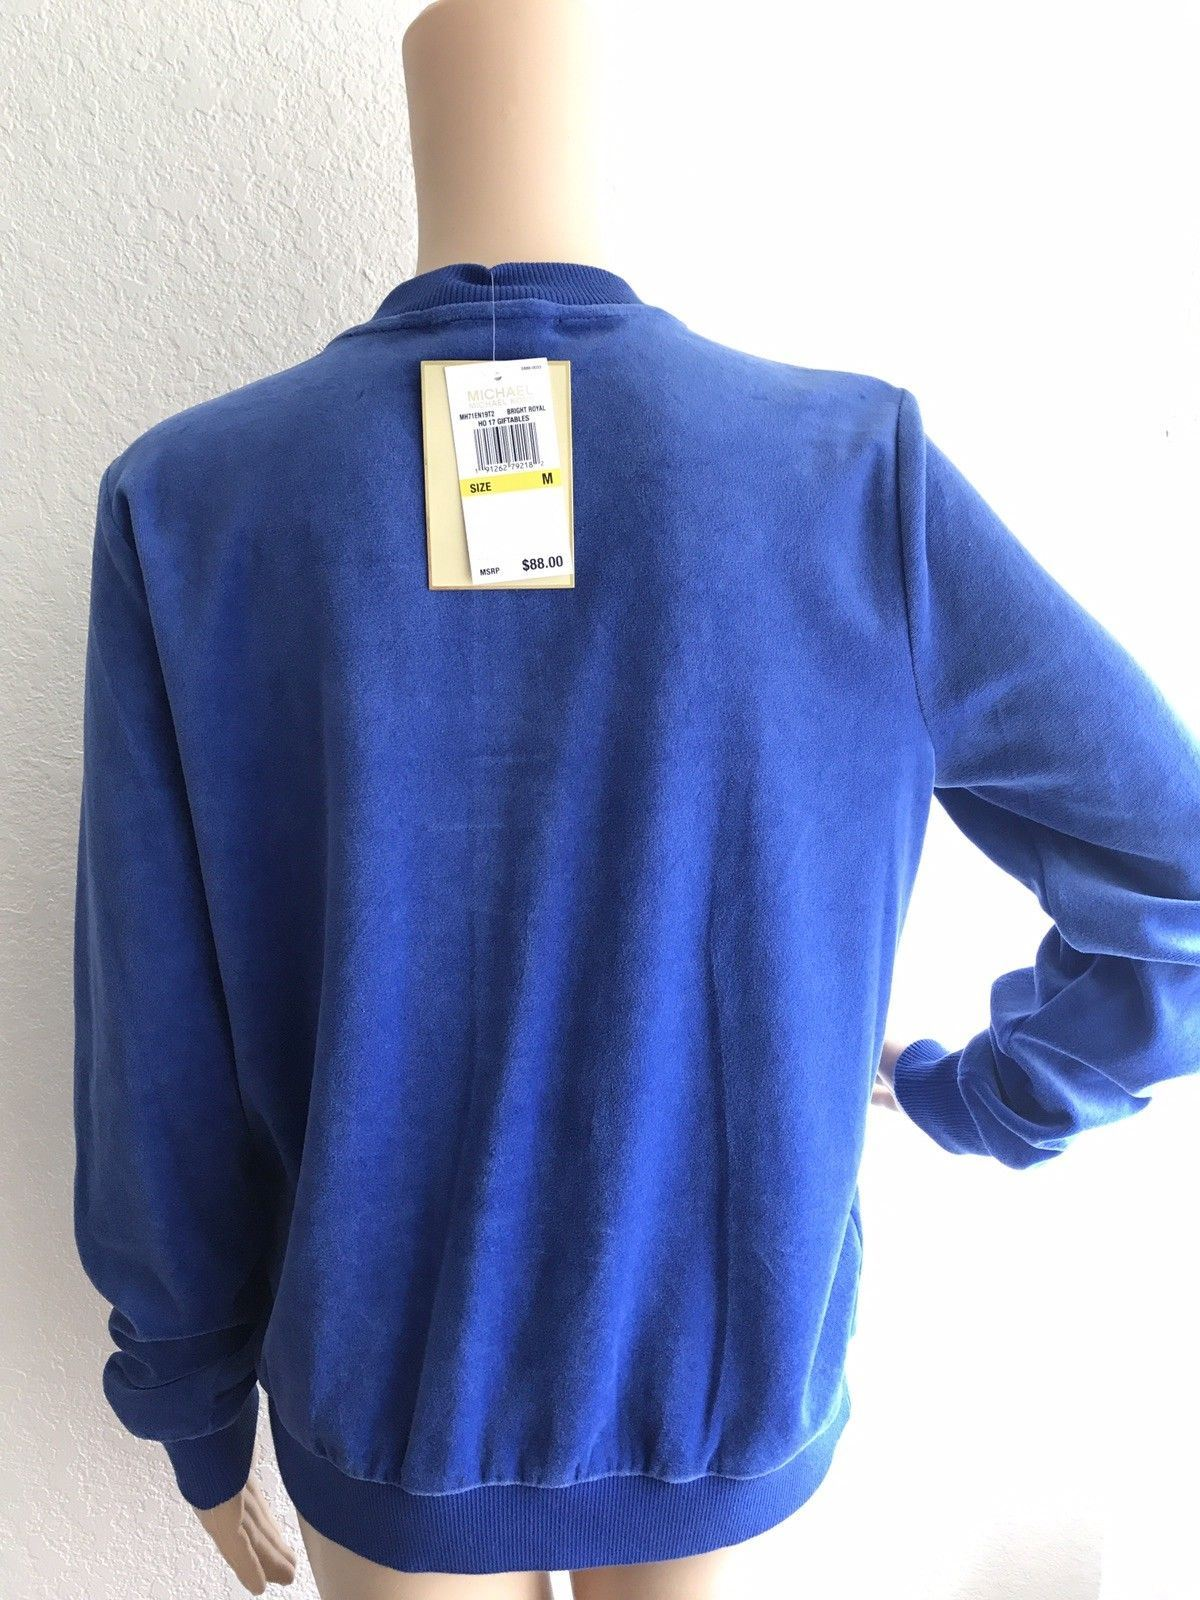 NWT $88 MICHAEL KORS Bright Royal Zip Silver Velour Bomber Track Jacket Size M